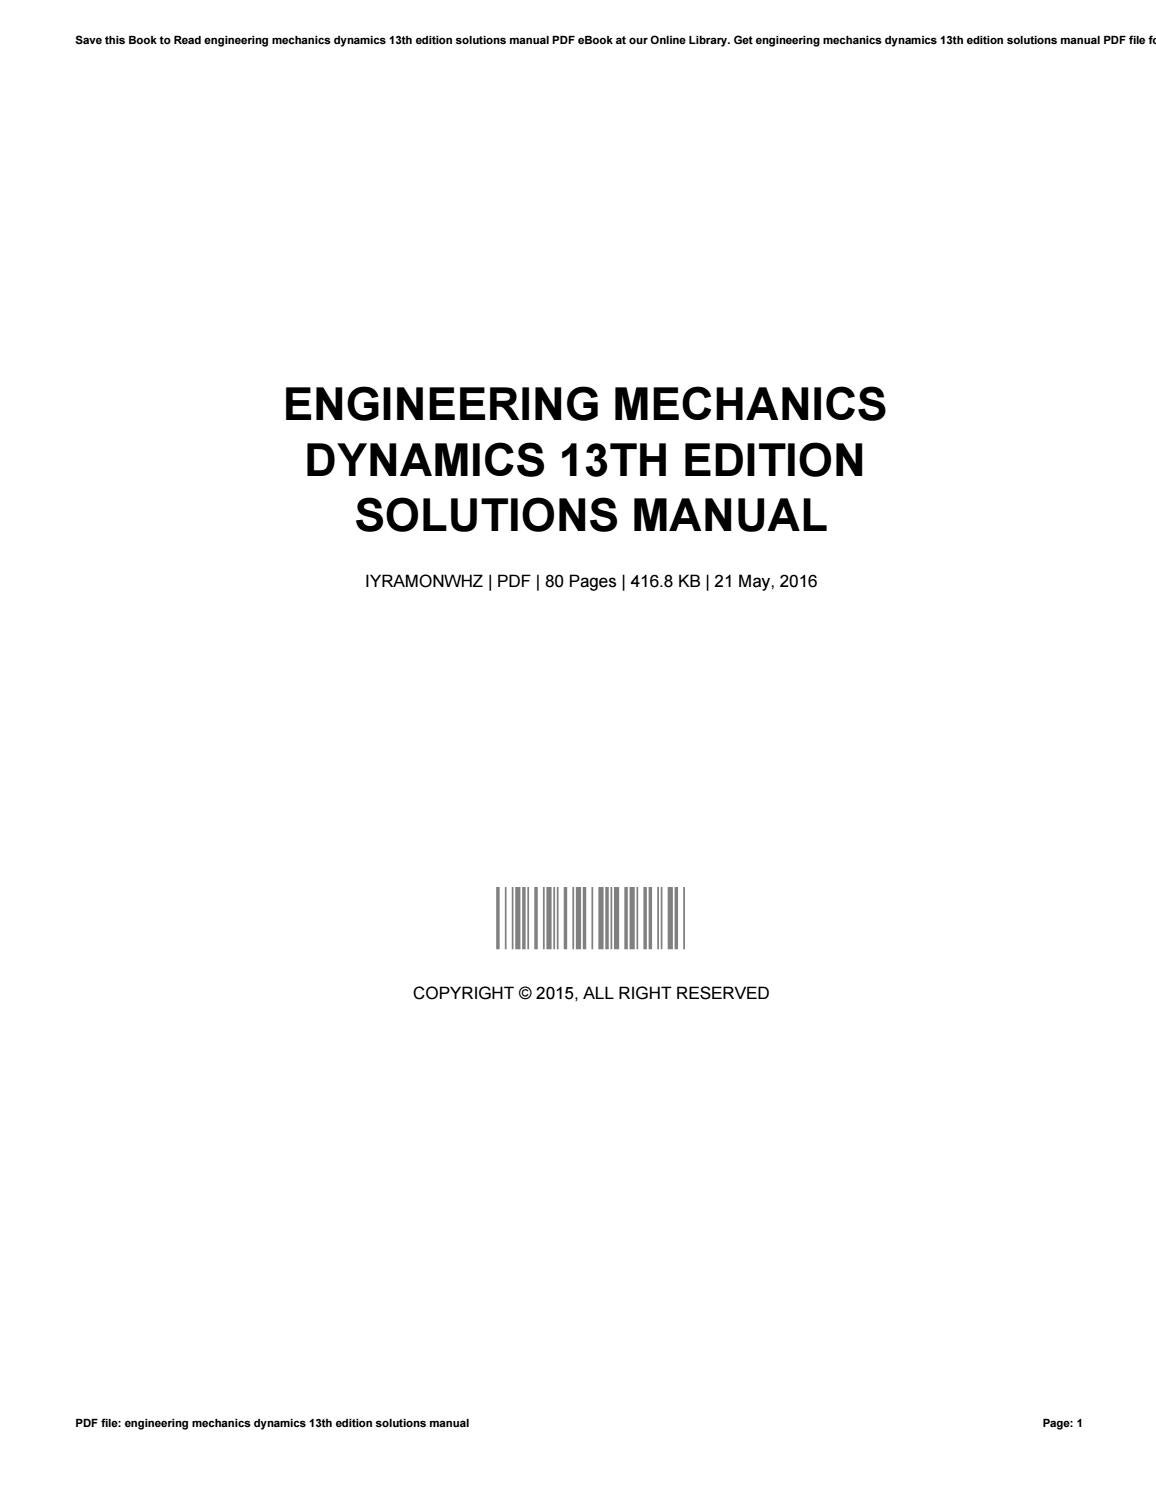 Engineering mechanics 13th edition solutions manual solution manual pdf array best free fillable forms engineering mechanics statics th edition rh lifechallengingrides us fandeluxe Choice Image